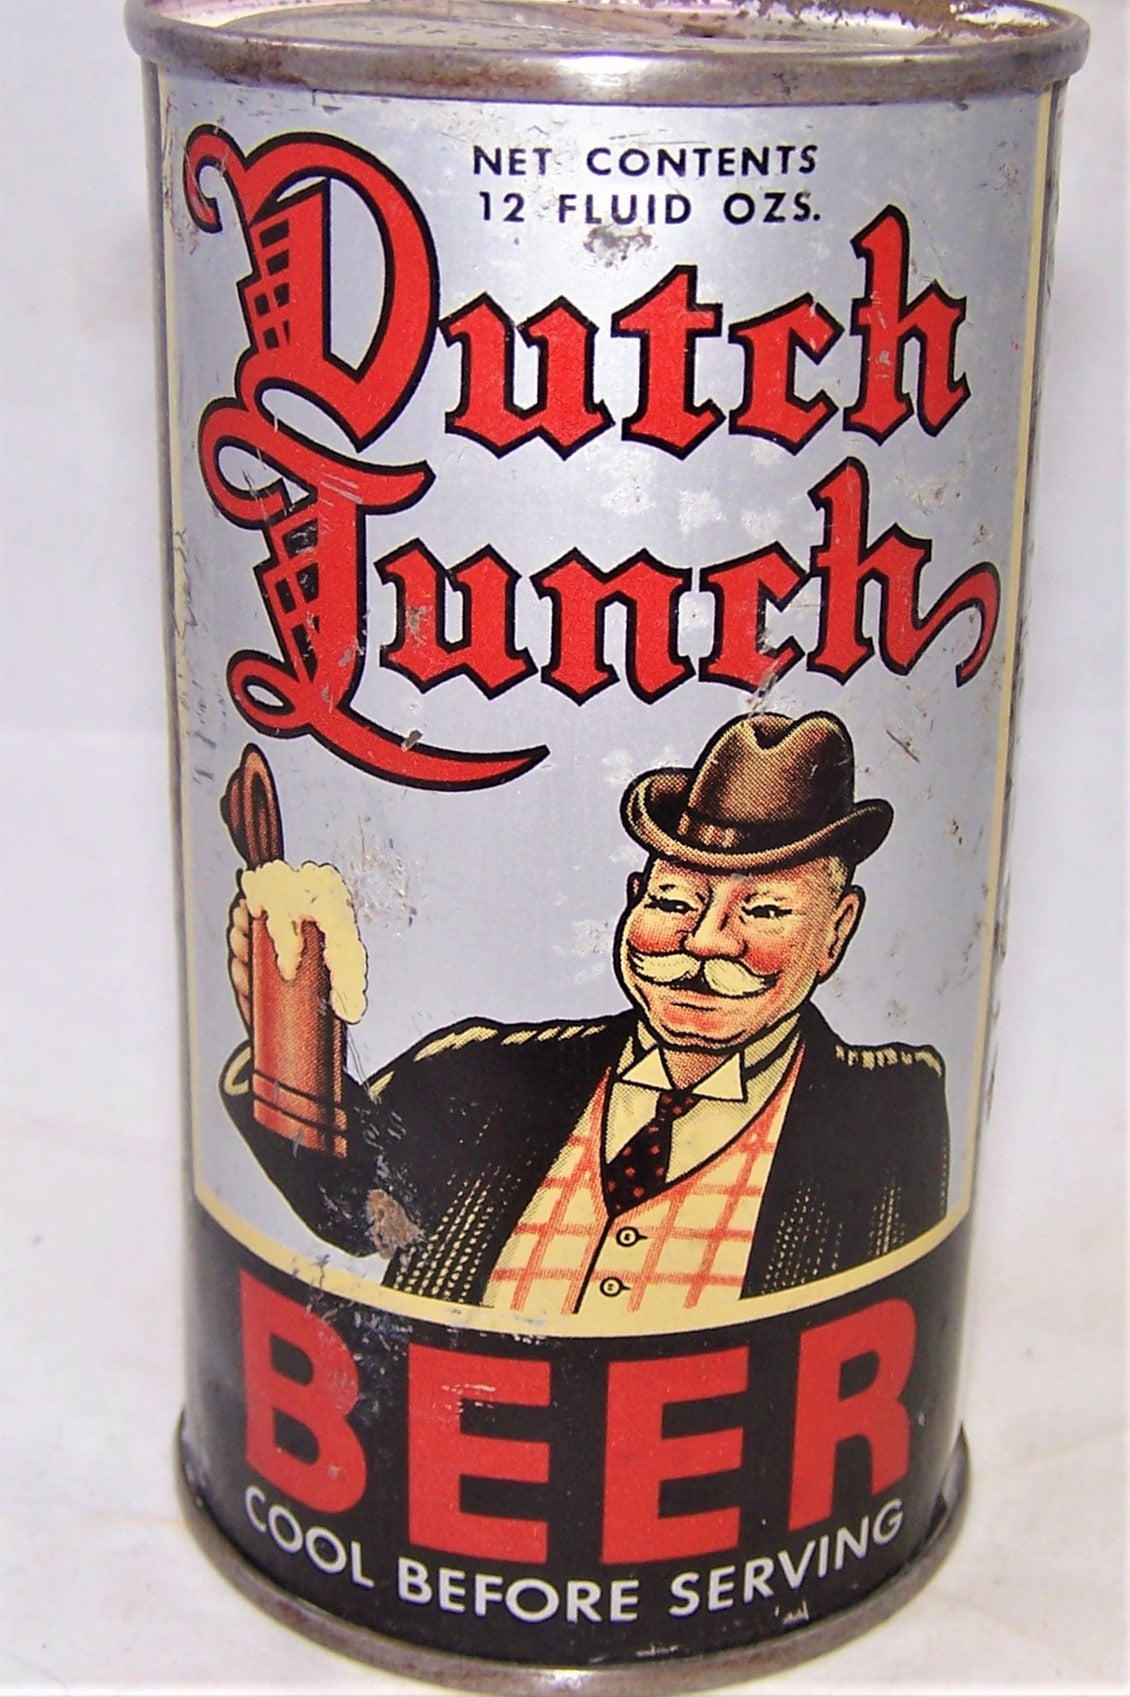 Dutch Lunch Beer, Lilek # 208 and USBC 57-26, Grade 1- Sold on 02/22/19